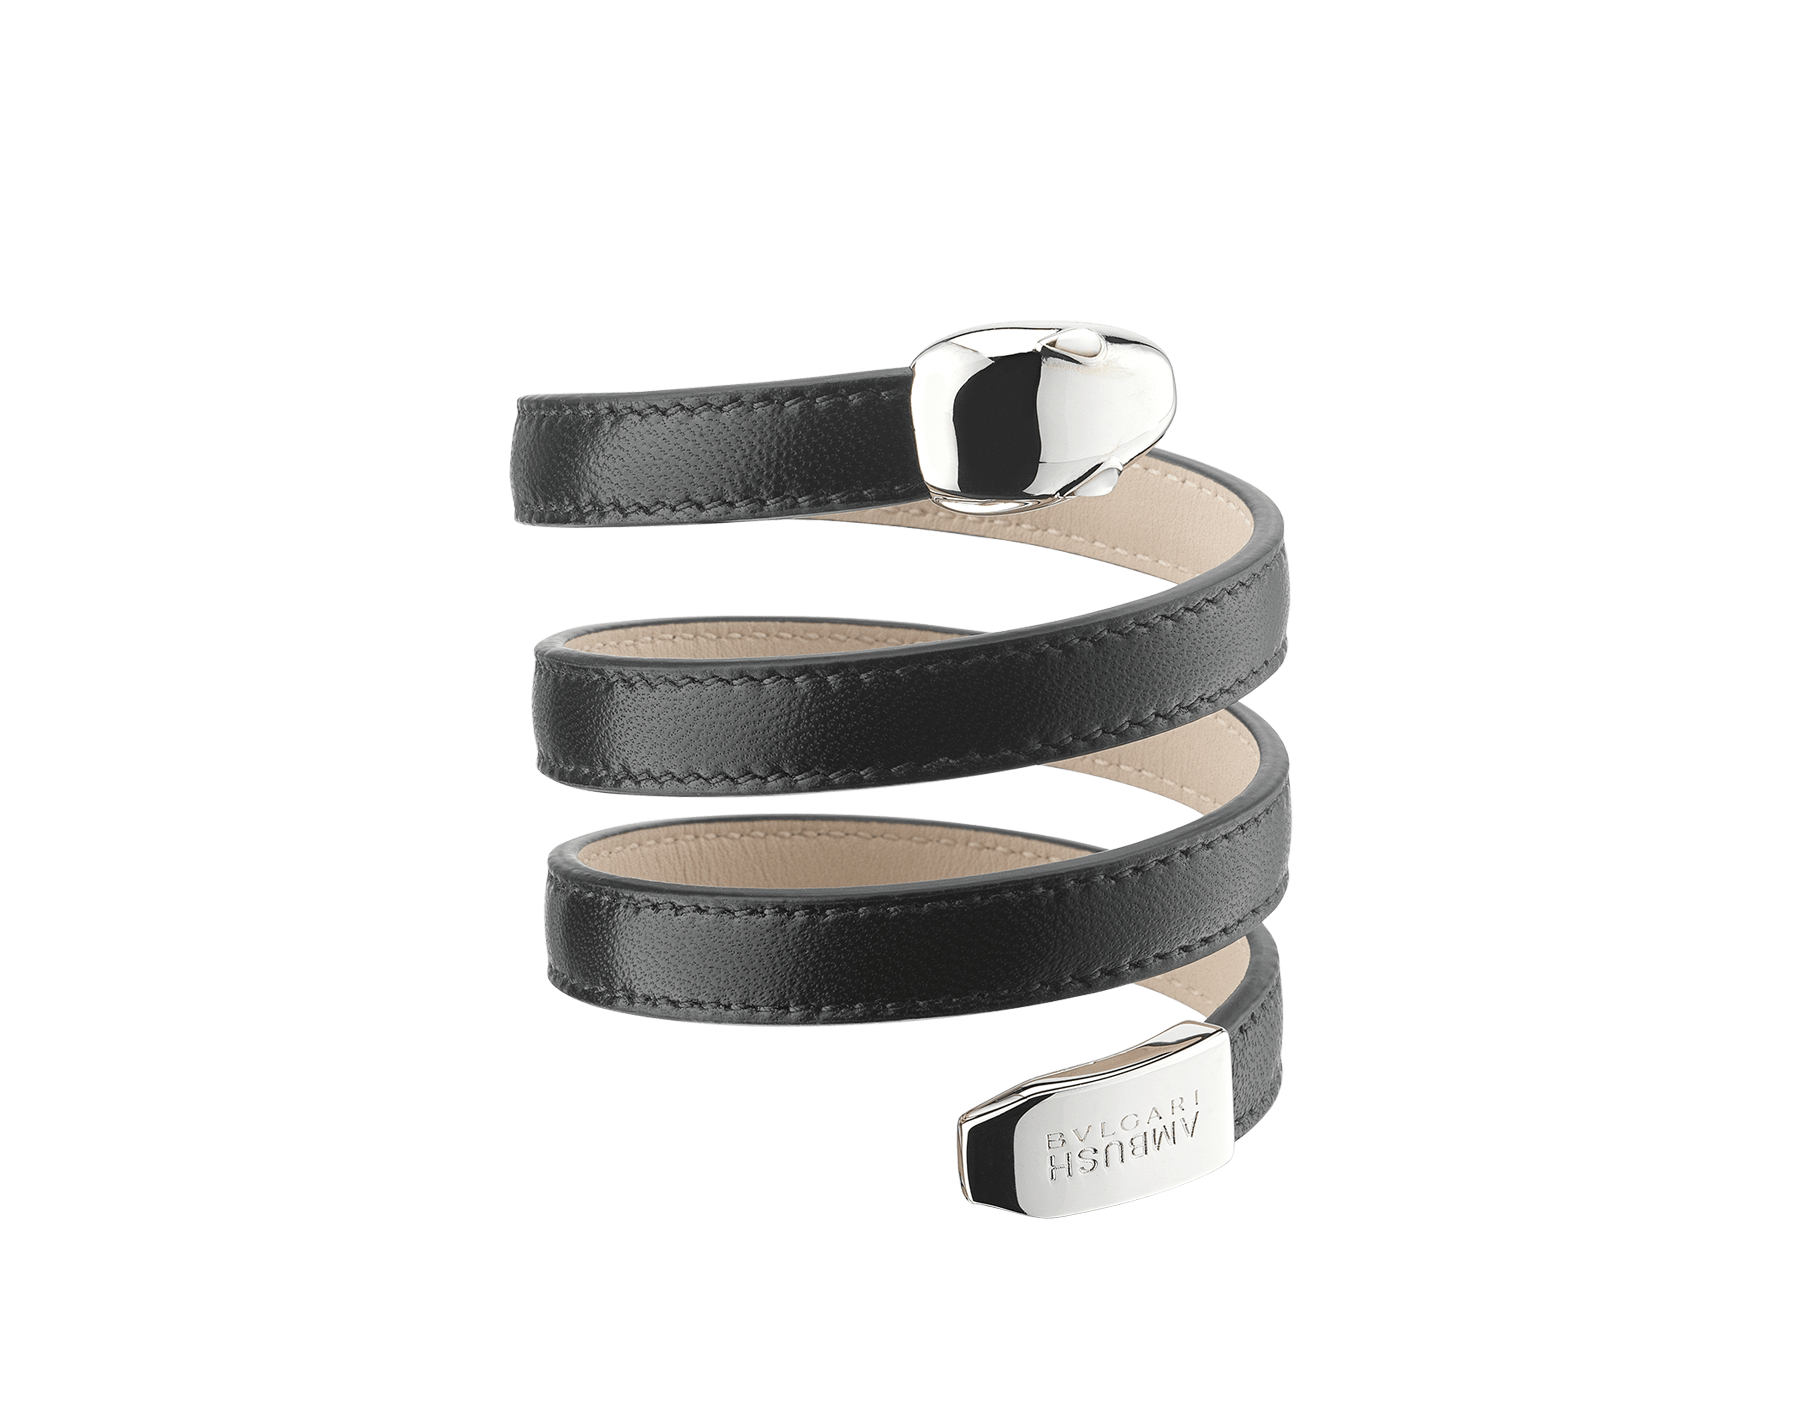 """""""Ambush x Bvlgari"""" Serpenti multi-coiled bracelet in black nappa leather. This model features palladium-plated brass iconic snakehead décor, finished with mother of pearl eyes and snake tail with the """"BVLGARI AMBUSH"""" logo. Limited edition. 290366 image 1"""